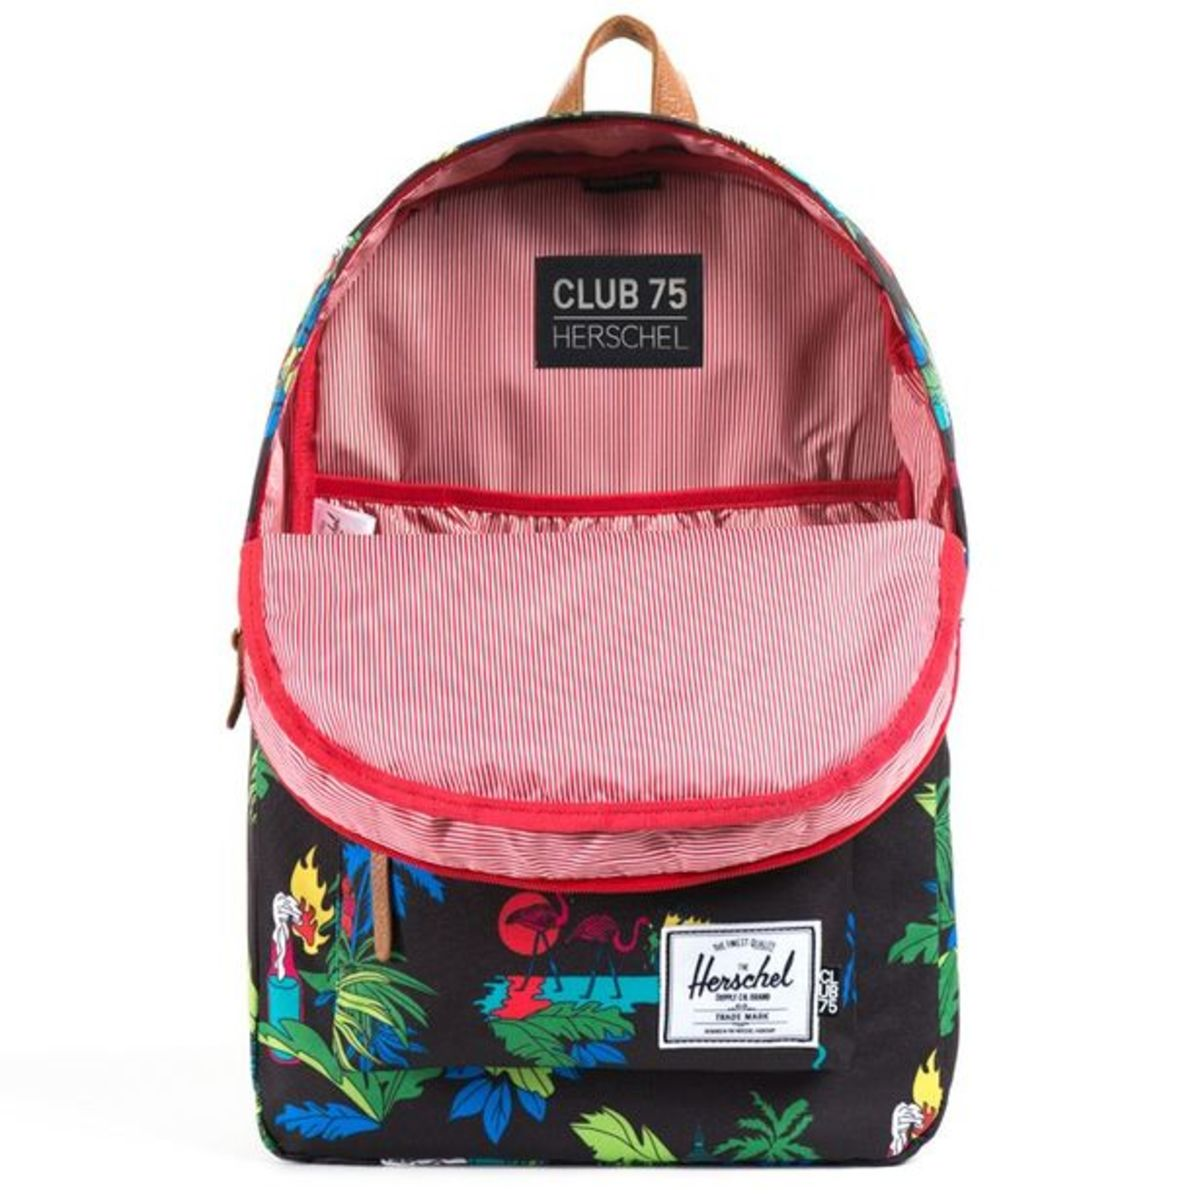 EDM Culture: Busy P's Club 75 Teams Up With Herschel Supply Company